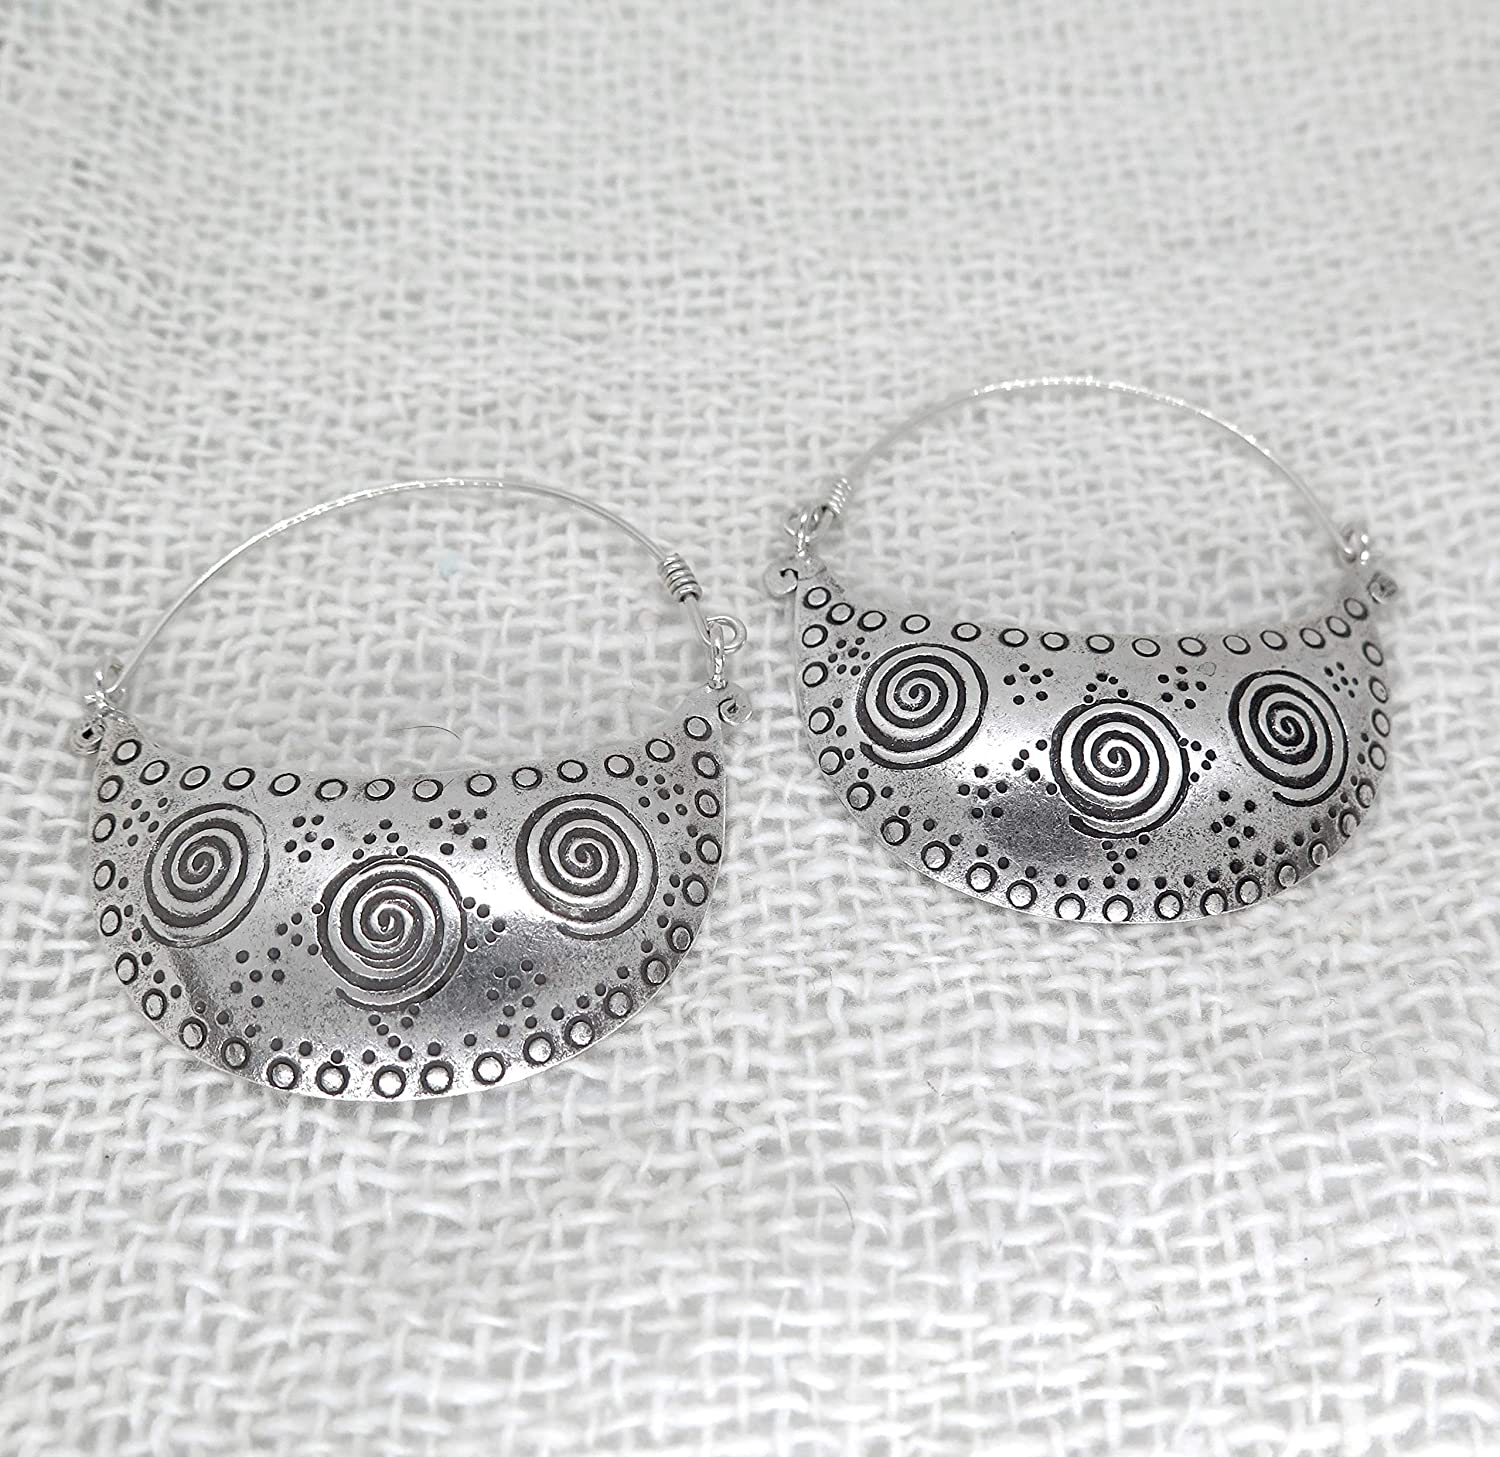 Sterling Silver Large Statement Crescent Moon Boho Handmade Hoop Woman Earrings with Spirals Ethnic Engraving